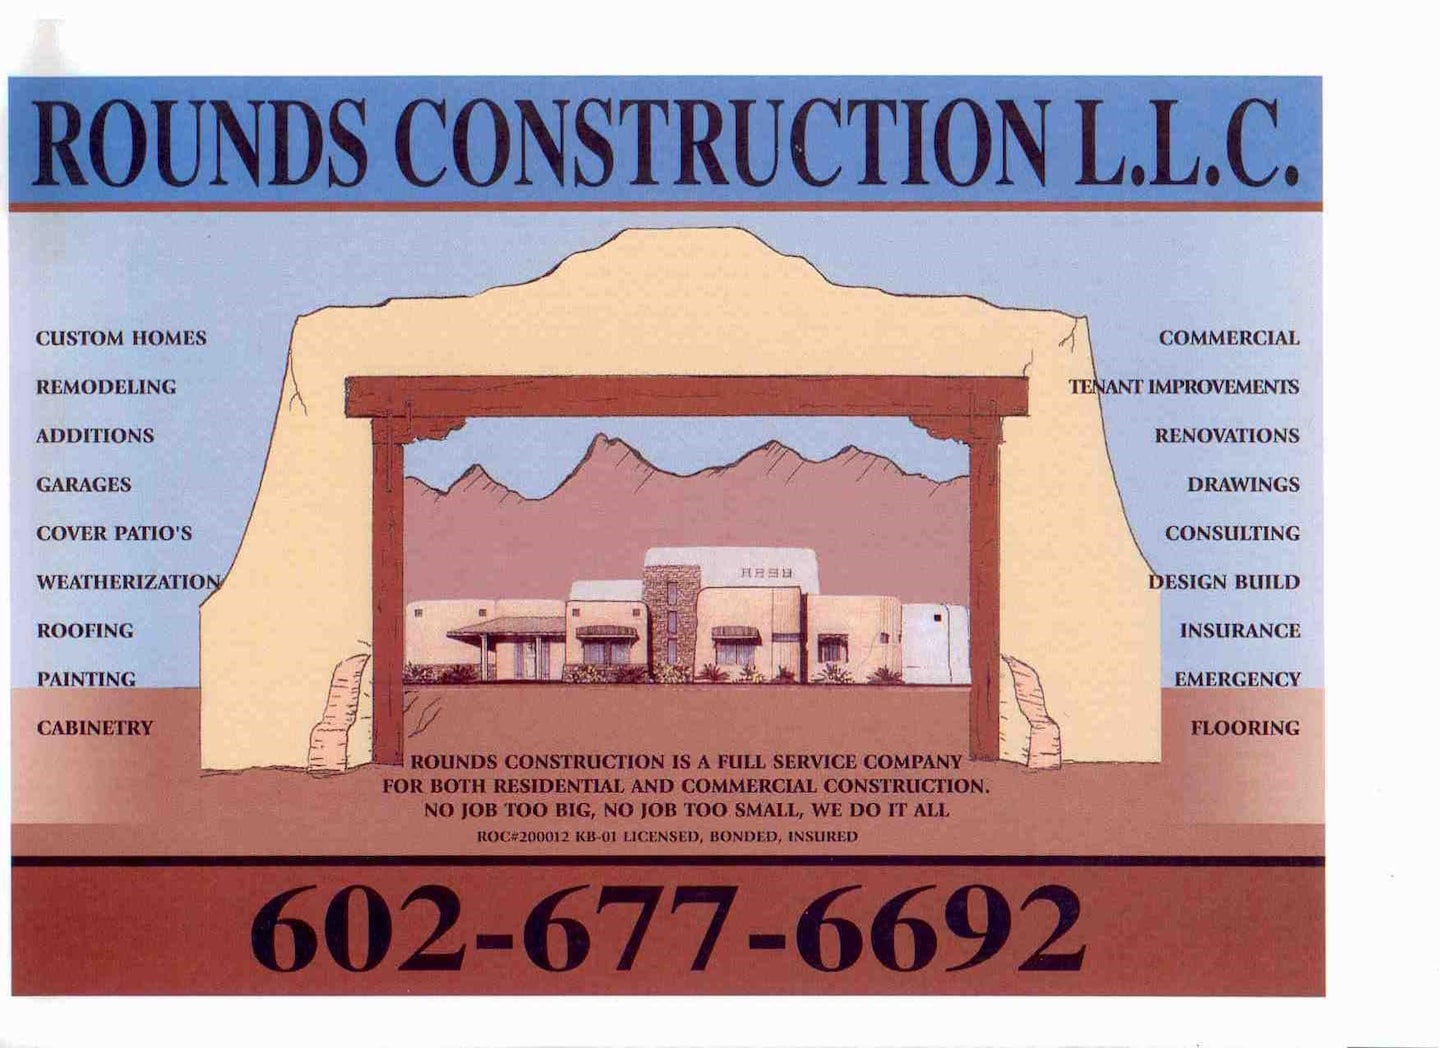 Rounds Construction LLC